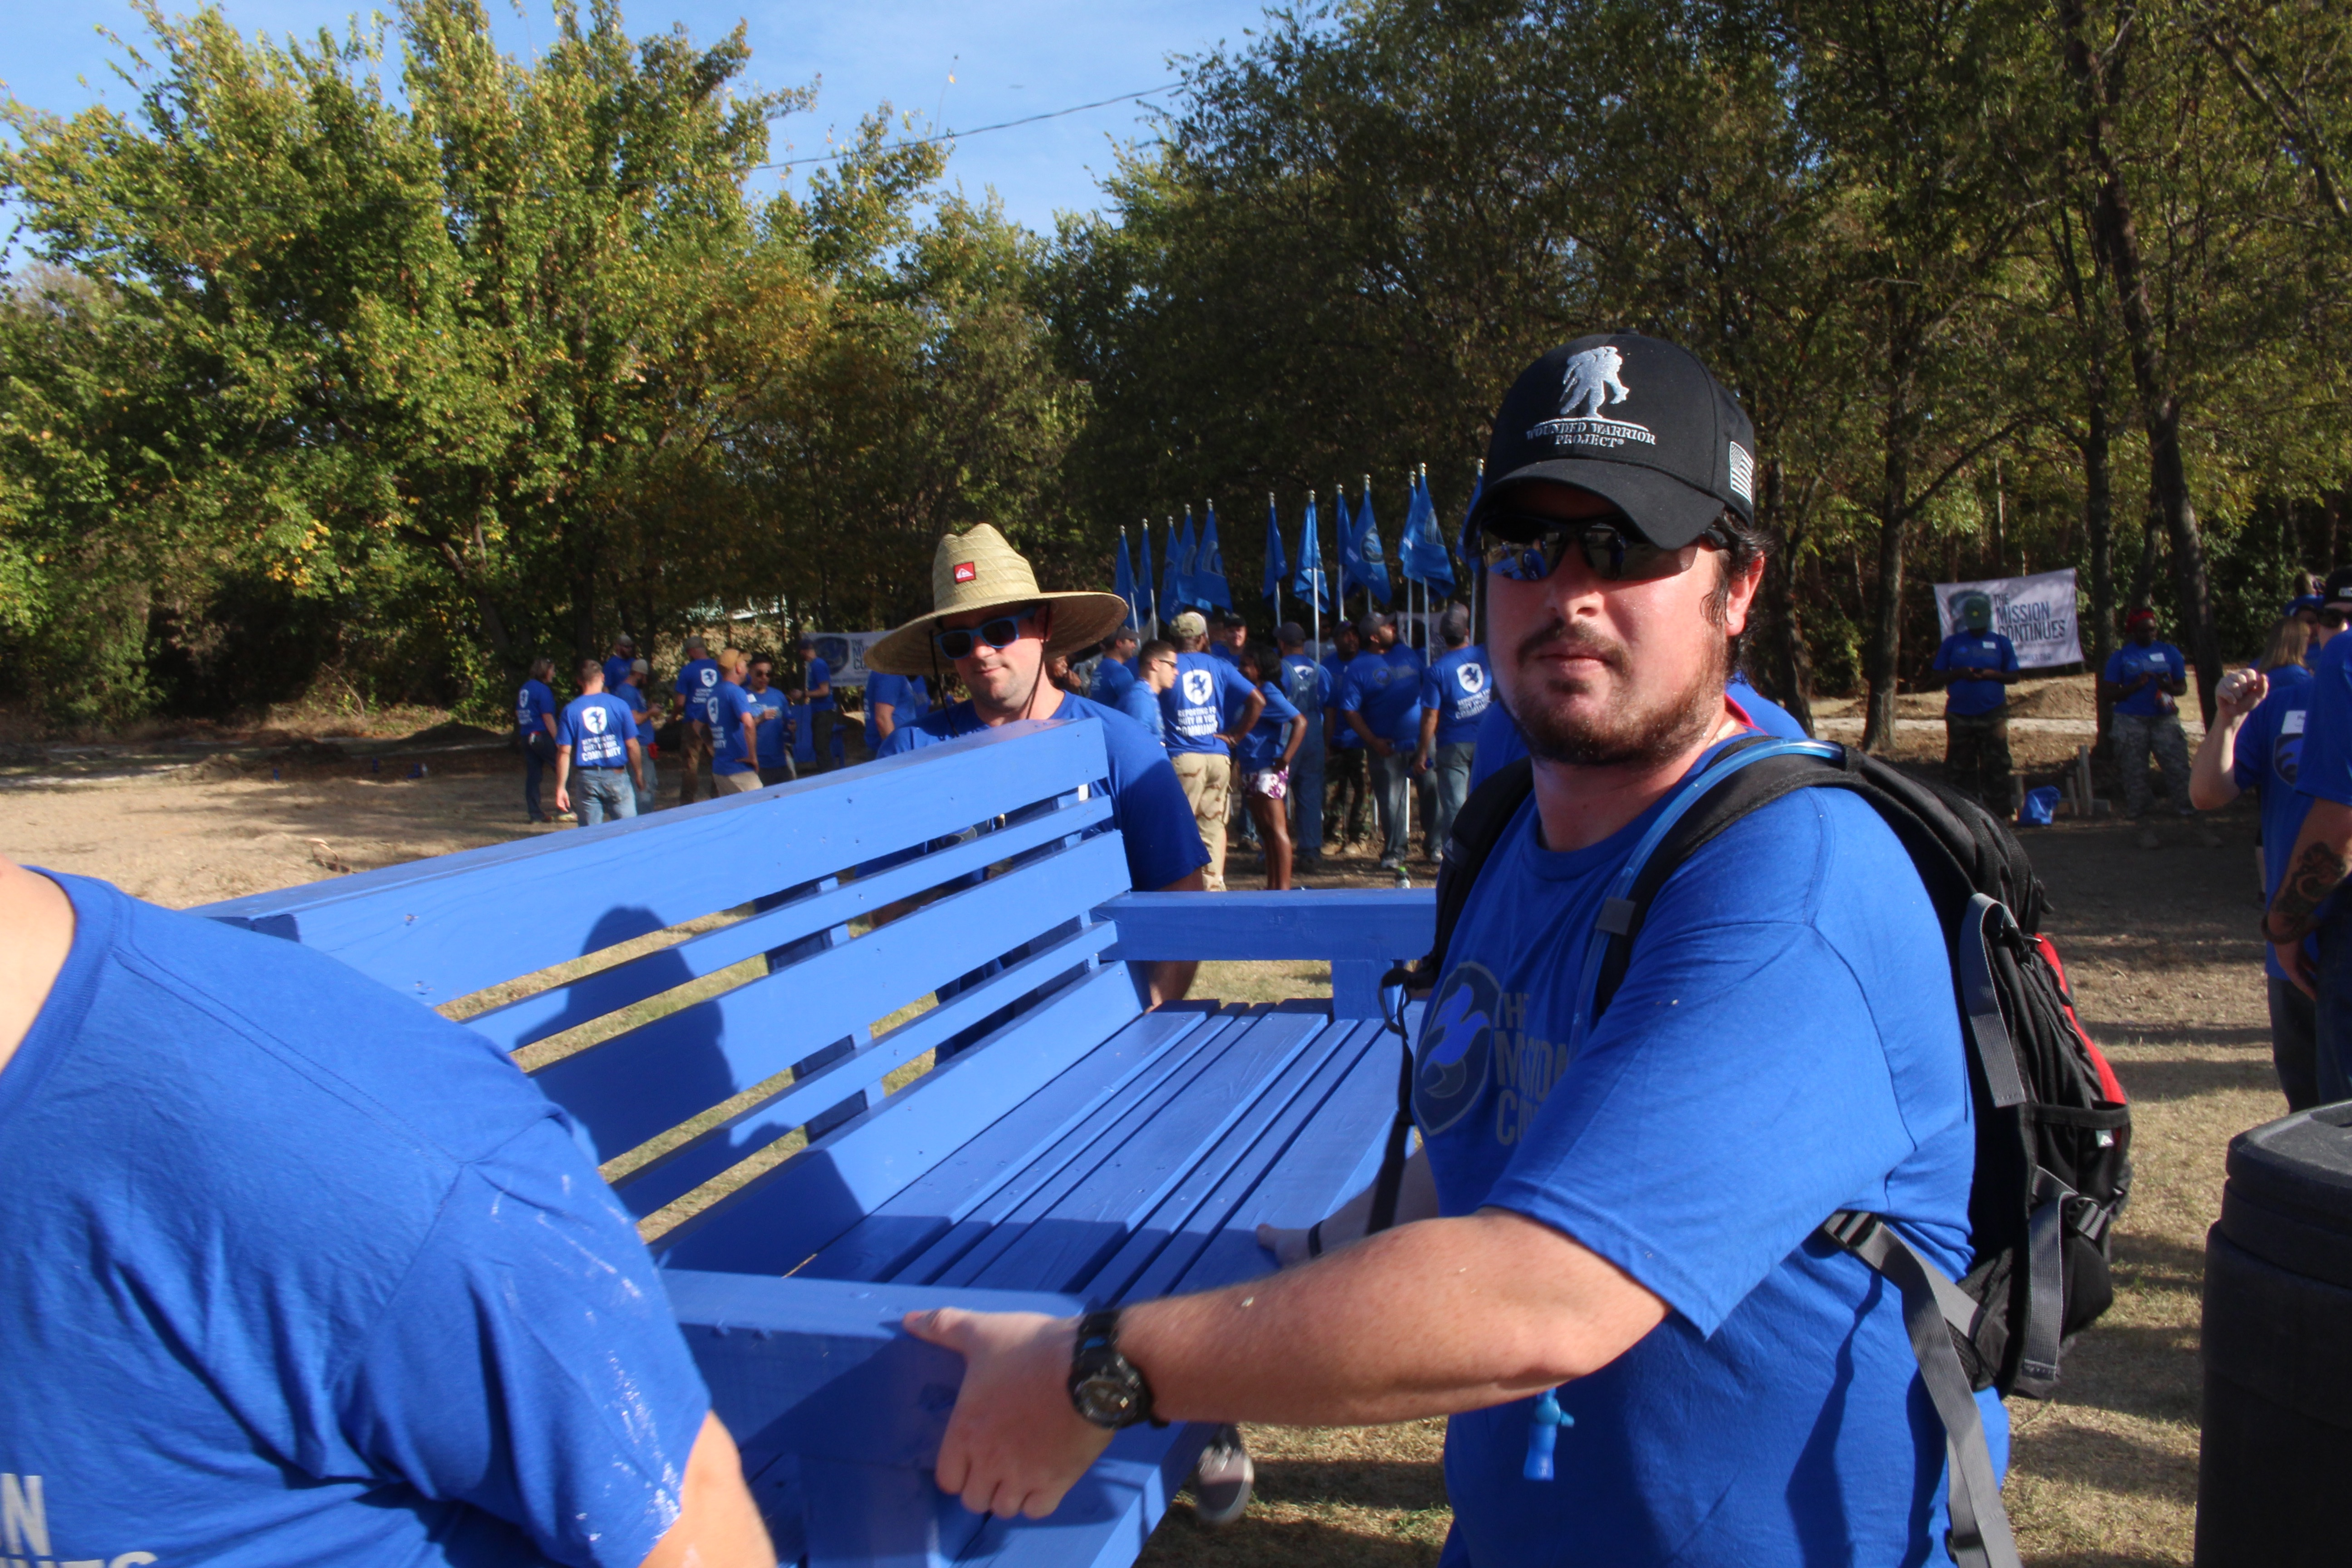 A new Fellow and Wounded Warrior Project alum install a freshly painted bench.